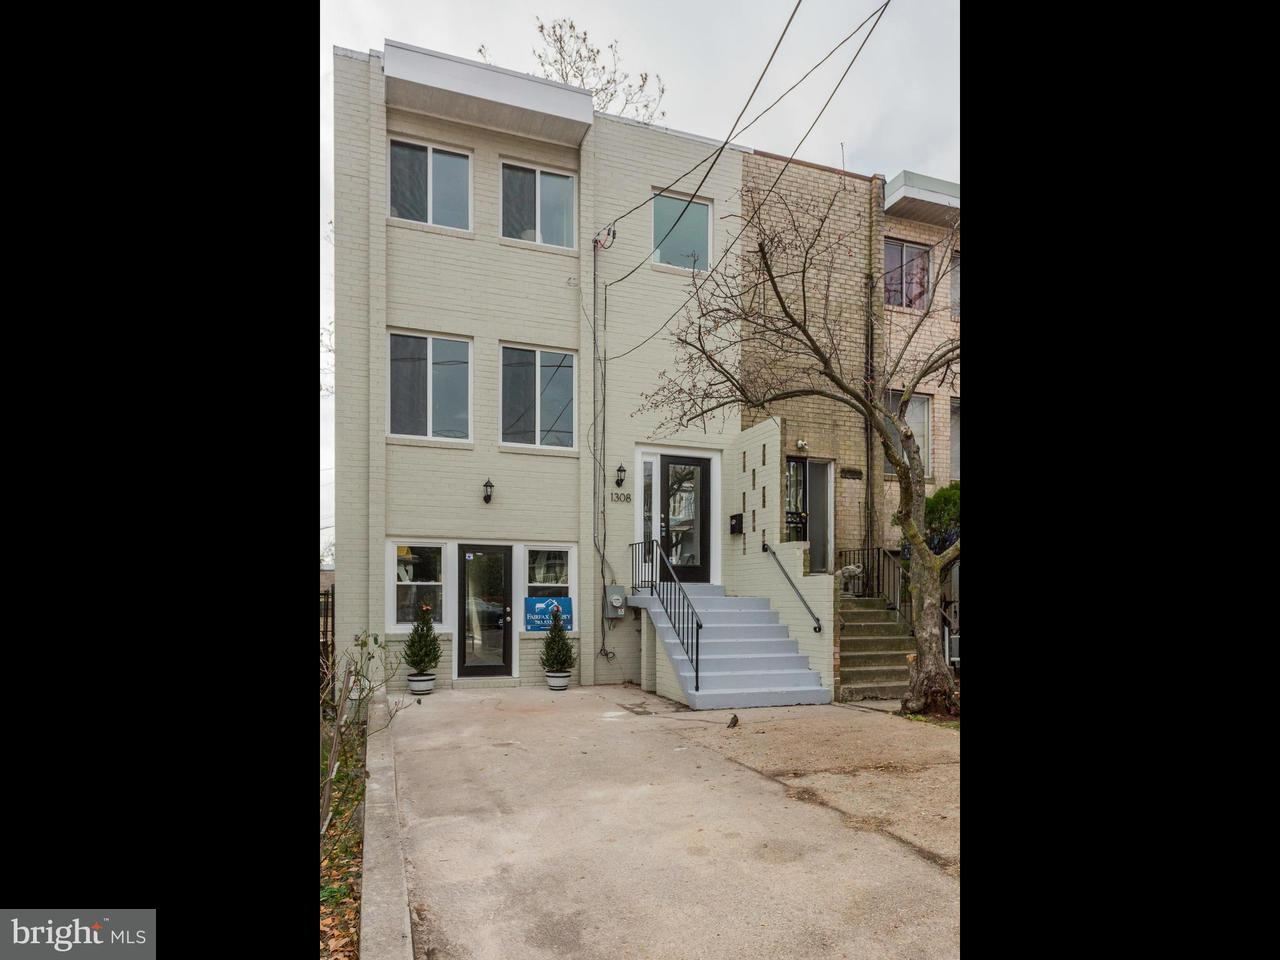 Townhouse for Sale at 1308 DELAFIELD PL NW 1308 DELAFIELD PL NW Washington, District Of Columbia 20011 United States